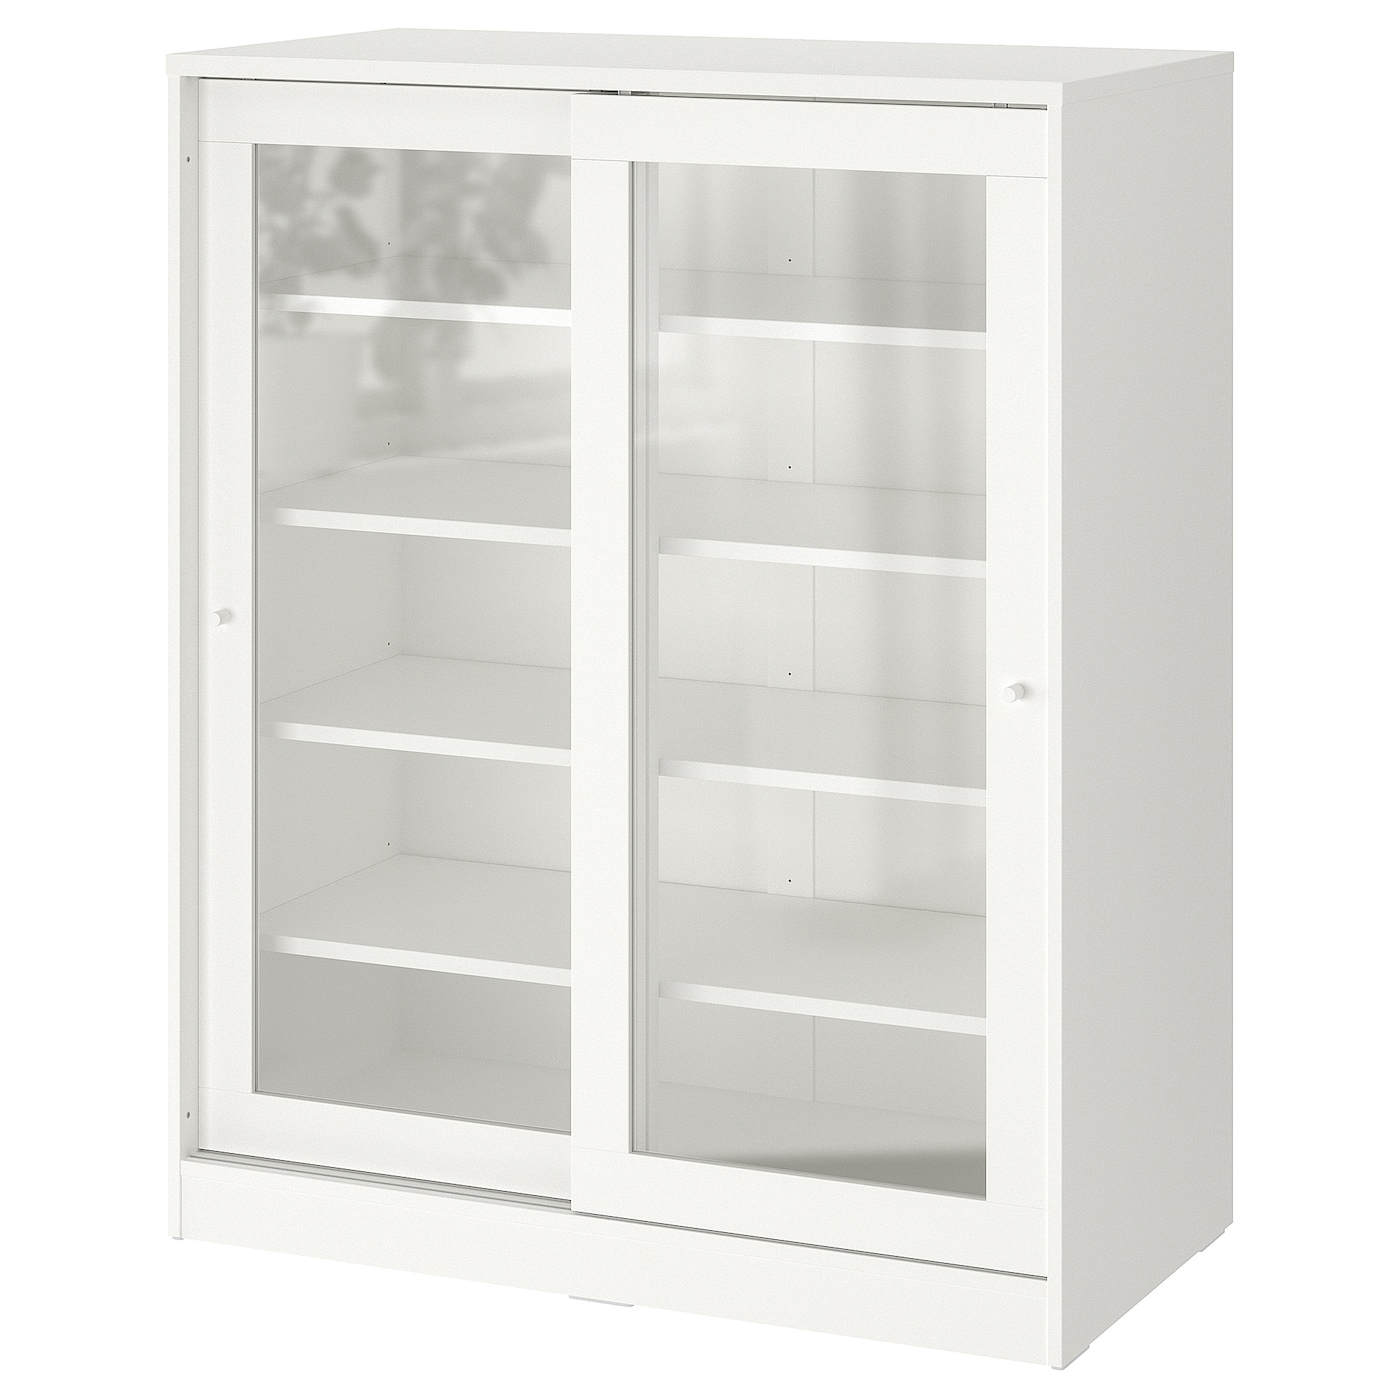 White Cabinets With Black Glazing: SYVDE Cabinet With Glass Doors